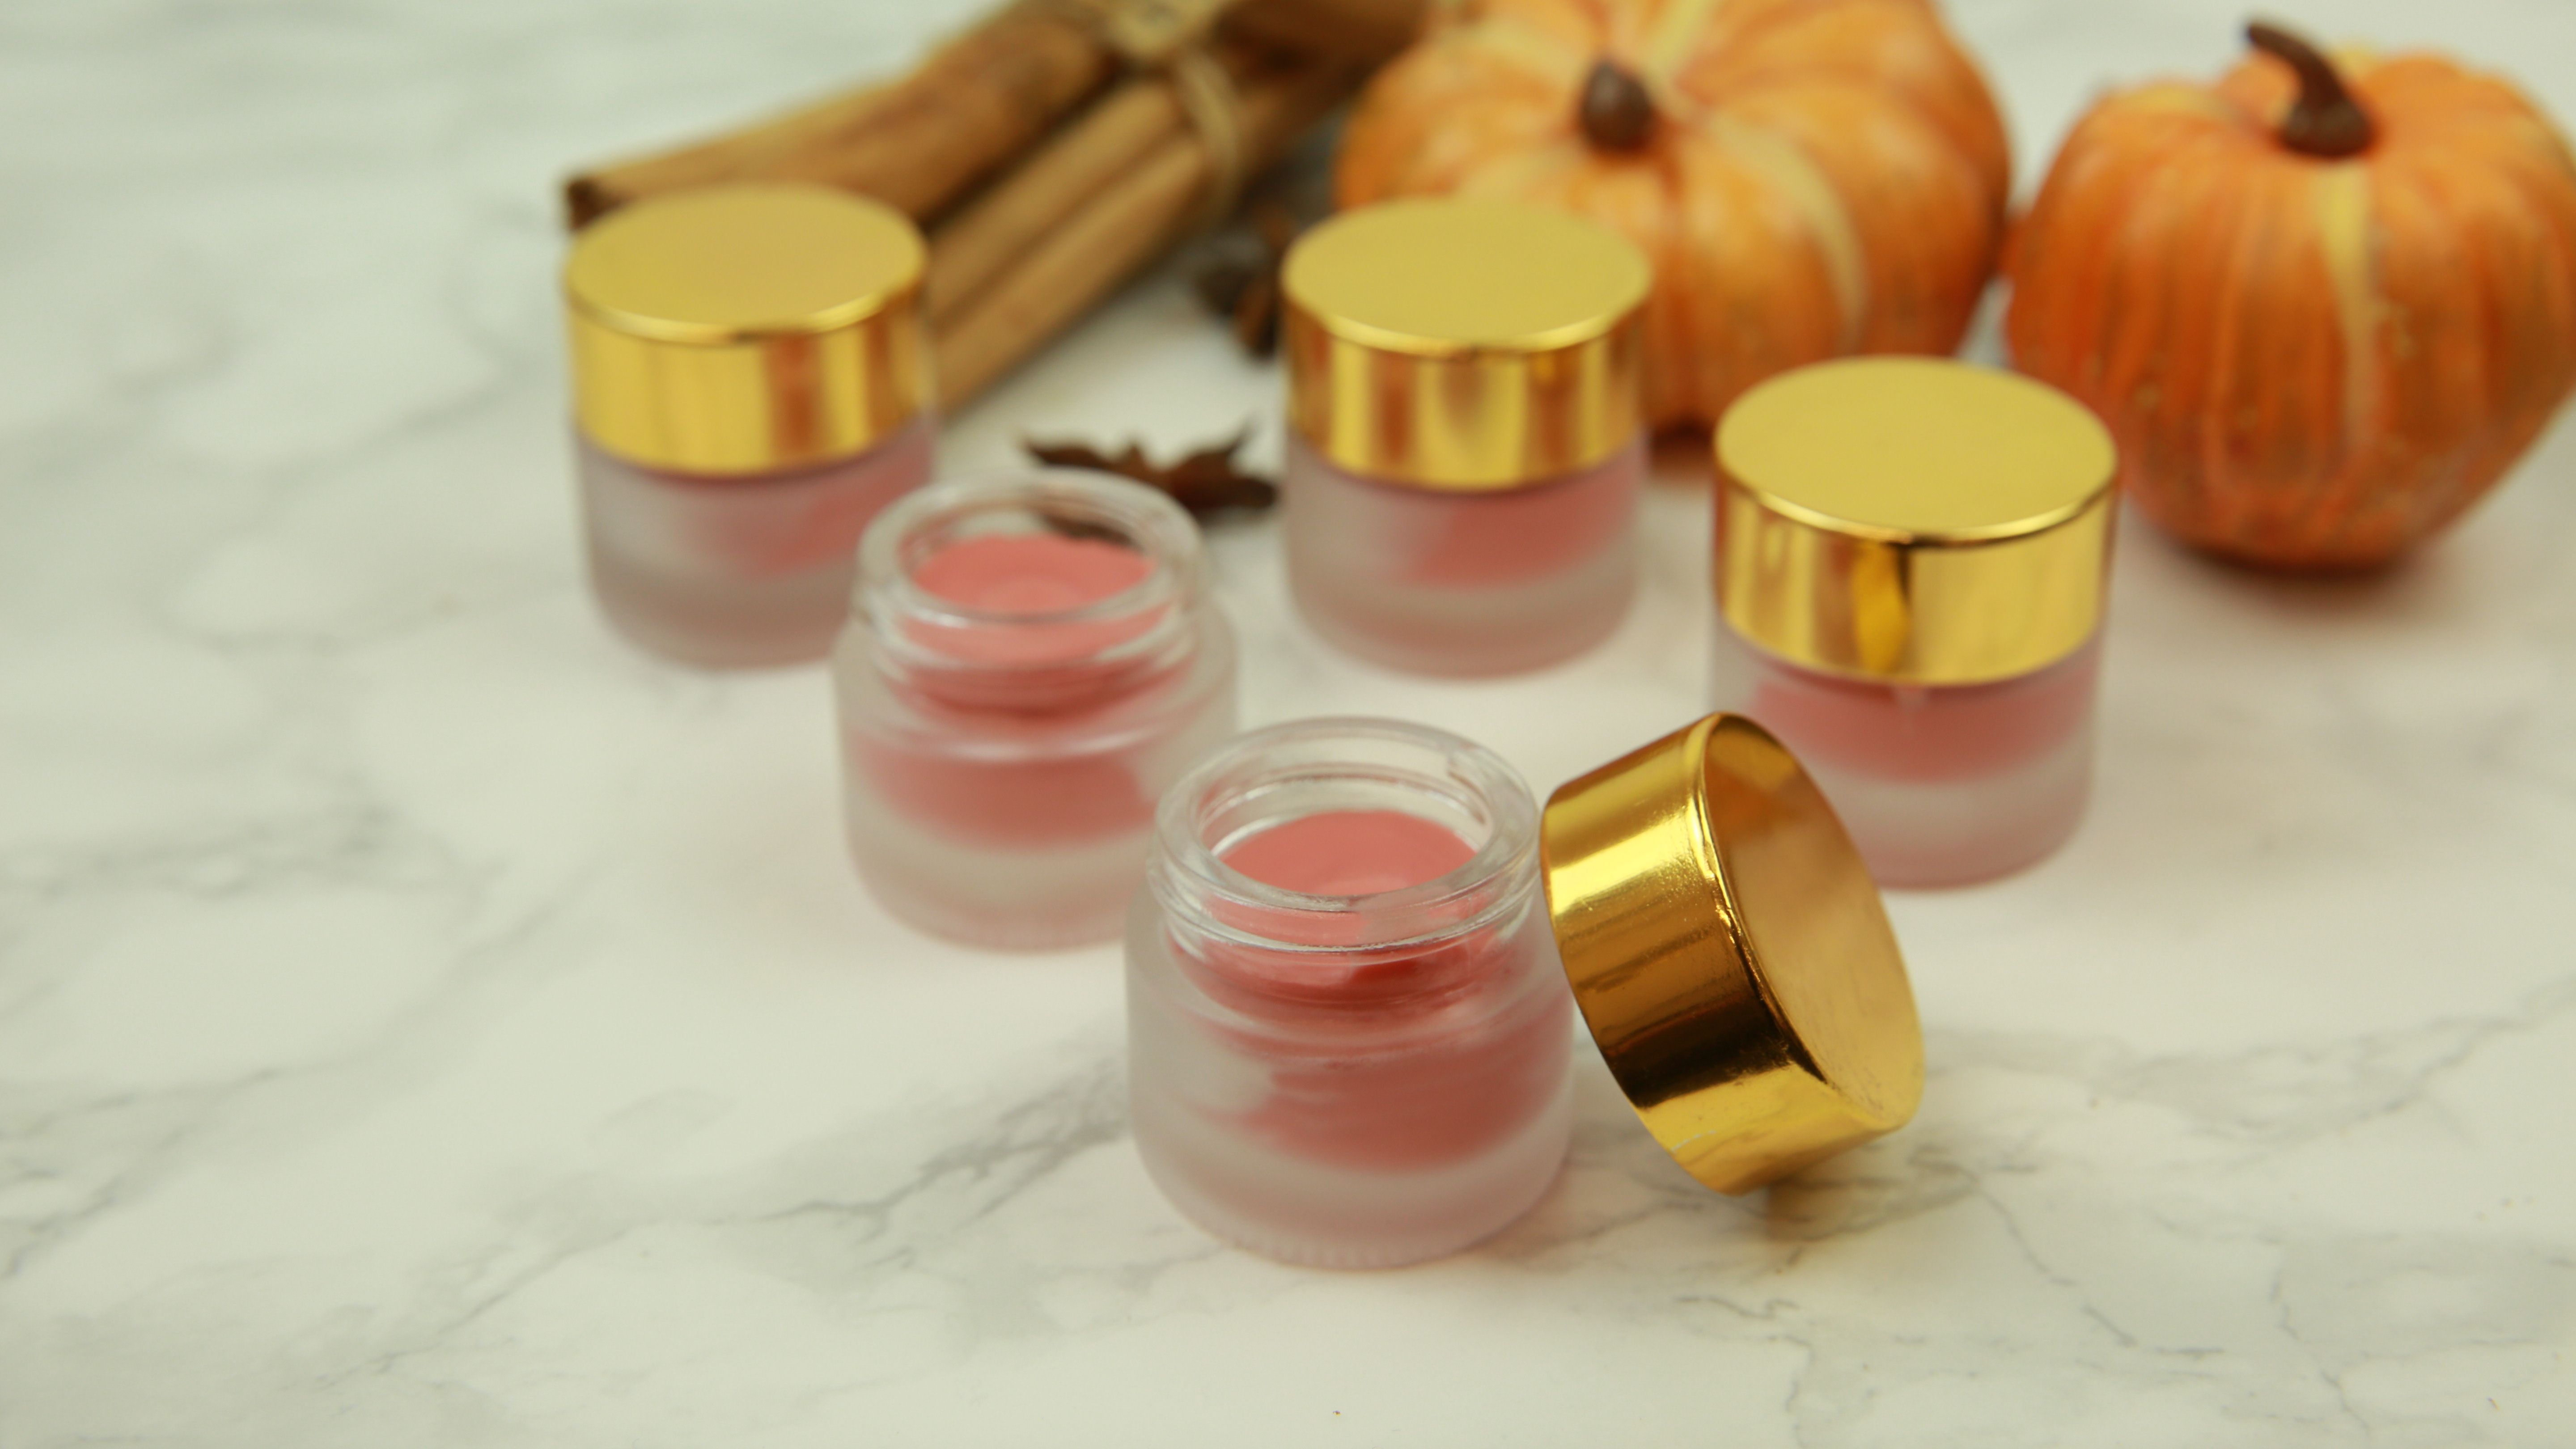 This DIY pumpkin spice lip balm is our new fall beauty fave